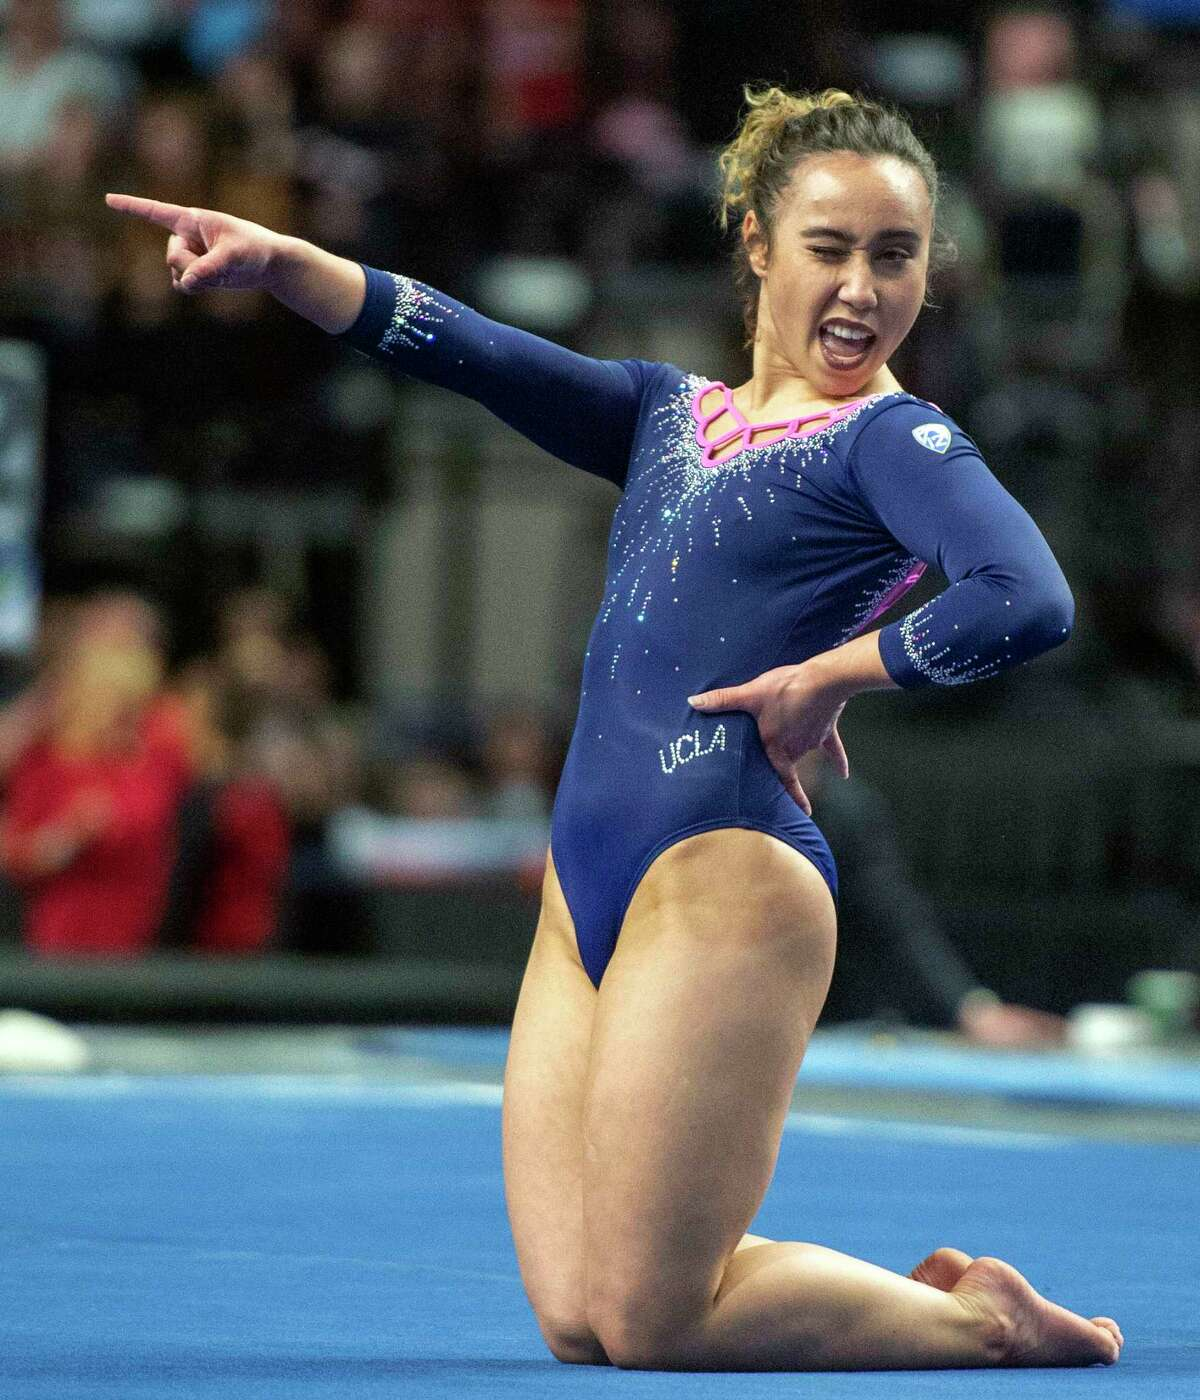 FILE - In this March 23, 2019, file photo, UCLA's Katelyn Ohashi competes on the floor, earning a 10, during the Pac-12 gymnastics championships in Salt Lake City. The former UCLA gymnast has committed to performing in the inaugural Aurora Games, an all-women?s sports and entertainment festival. The Aurora Games will be held Aug. 20-25 in Albany, N.Y., and feature about 150 world-class athletes, including Olympic medalists and national champions. (Rick Egan/The Salt Lake Tribune via AP, File)